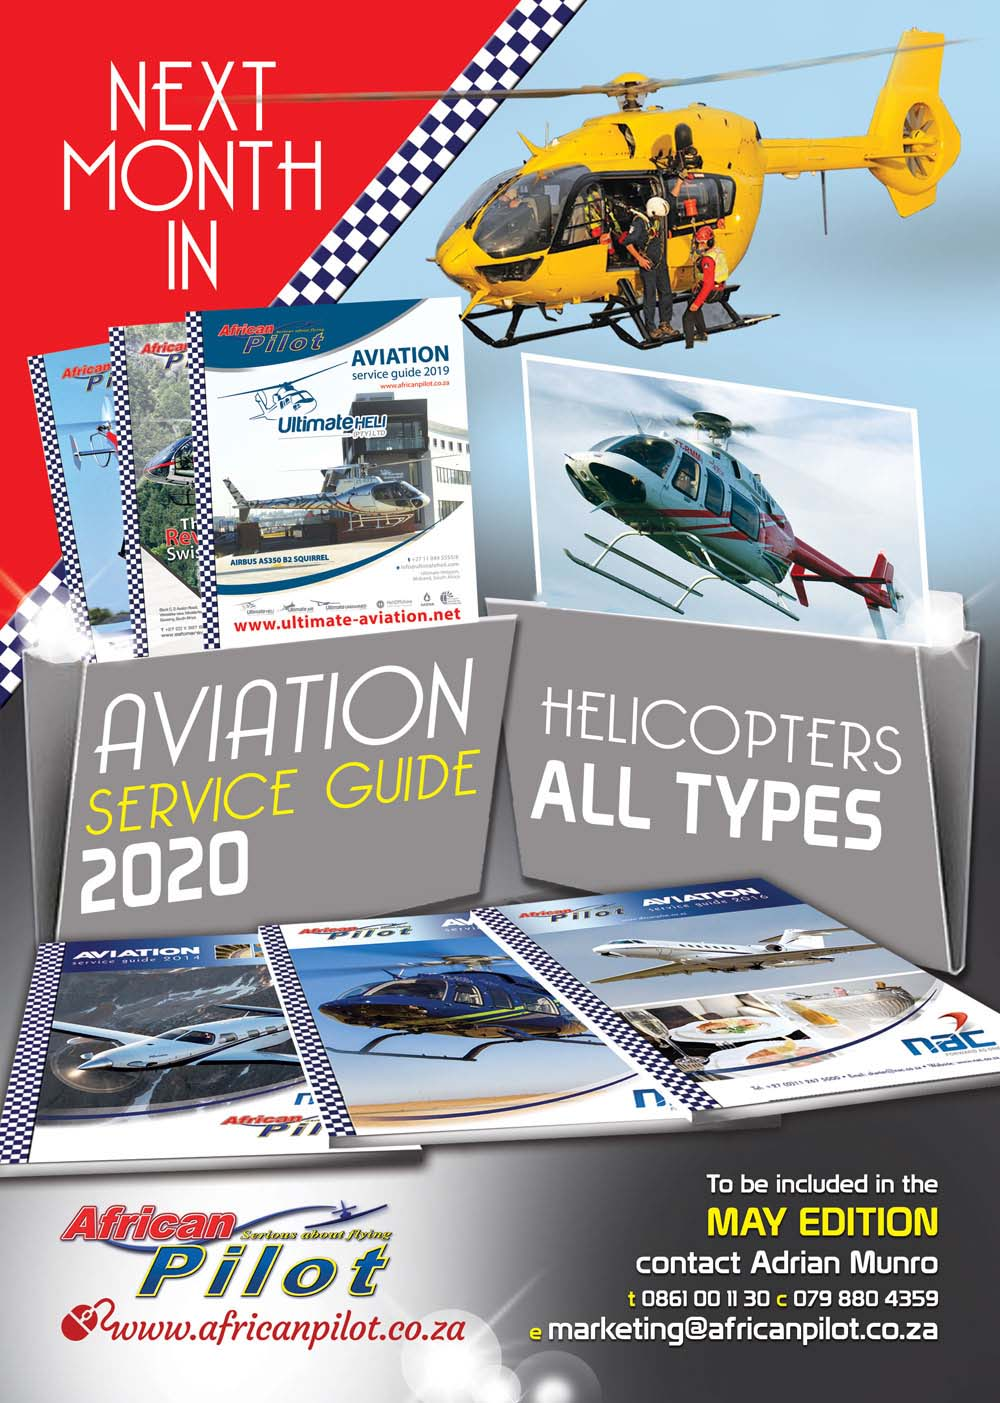 May edition features